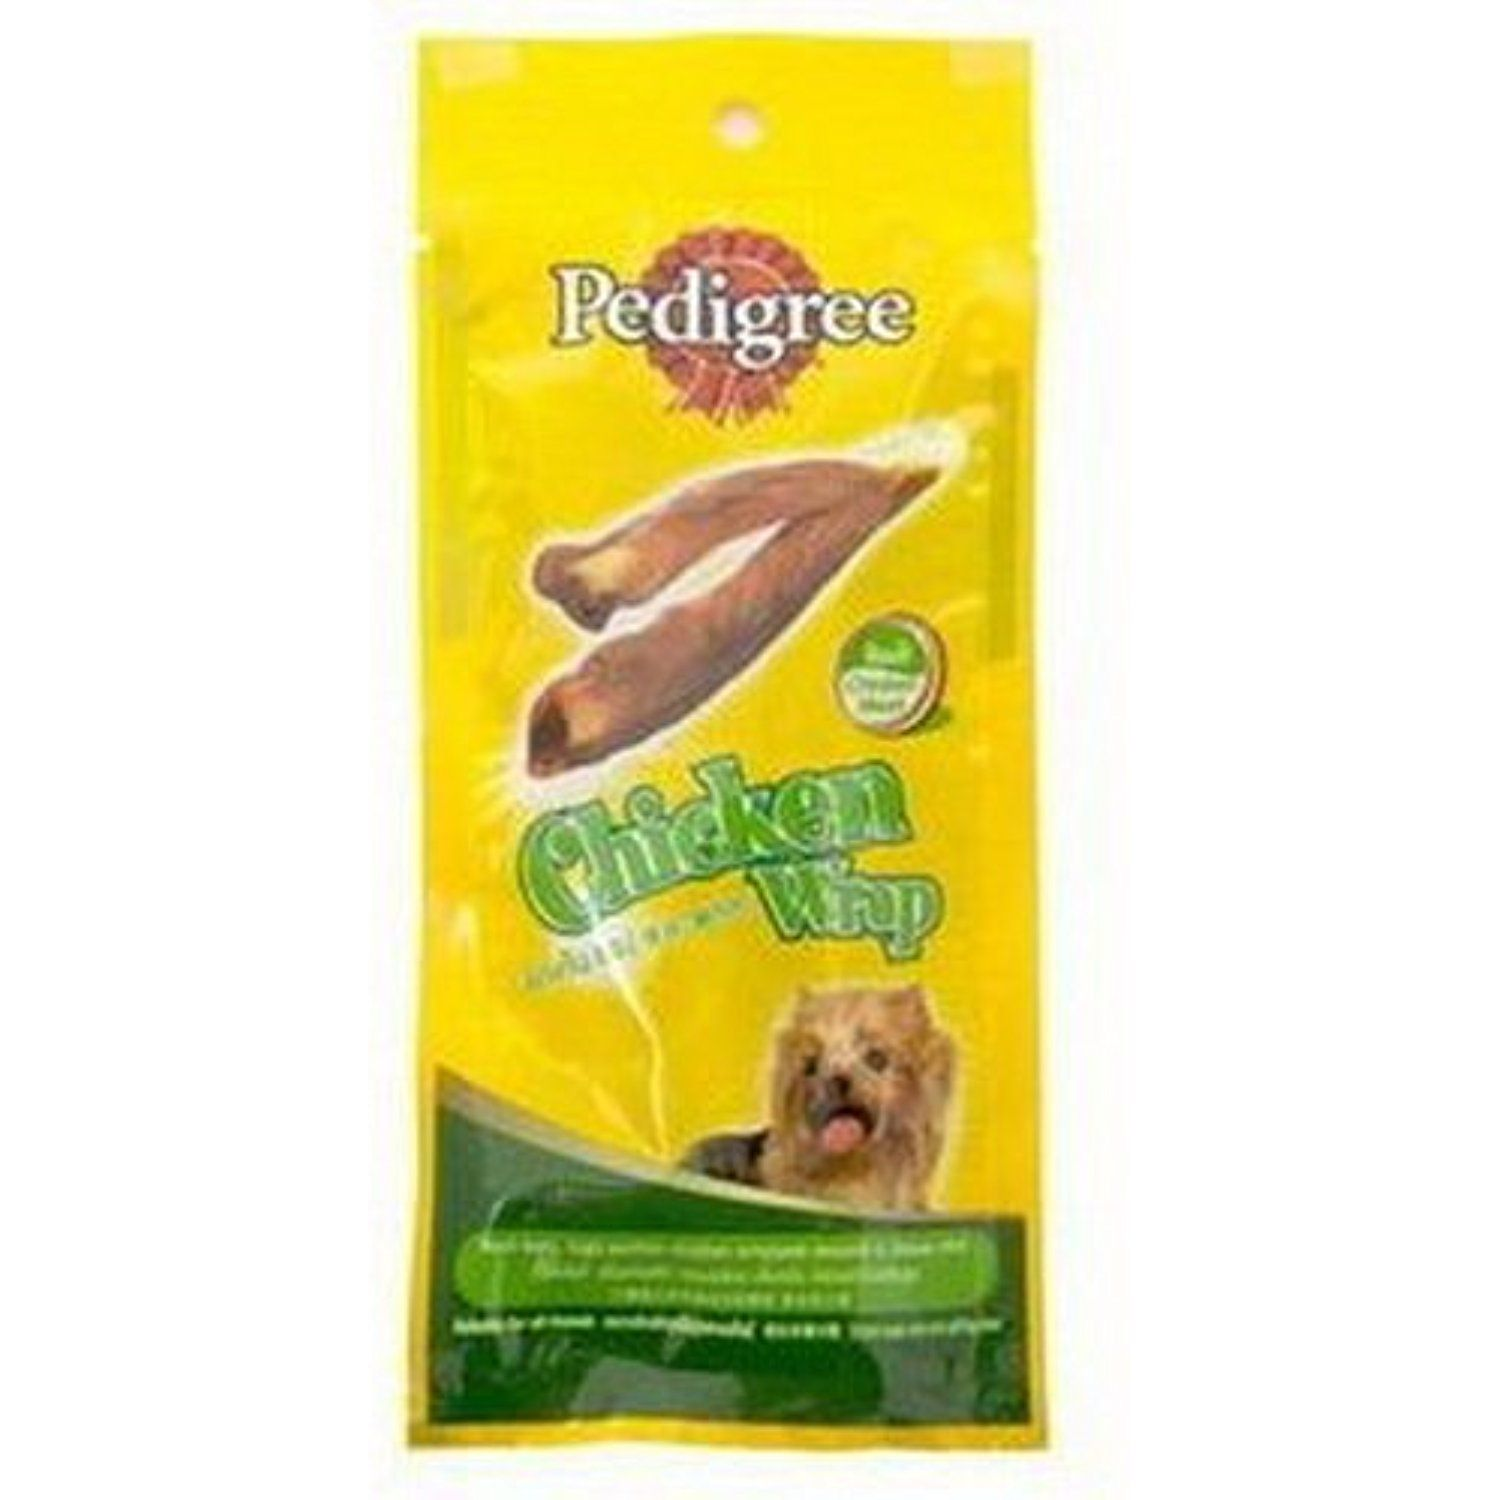 Pedigree Delight Chicken Wrap Snack For Dog 25 G Made In Thailand